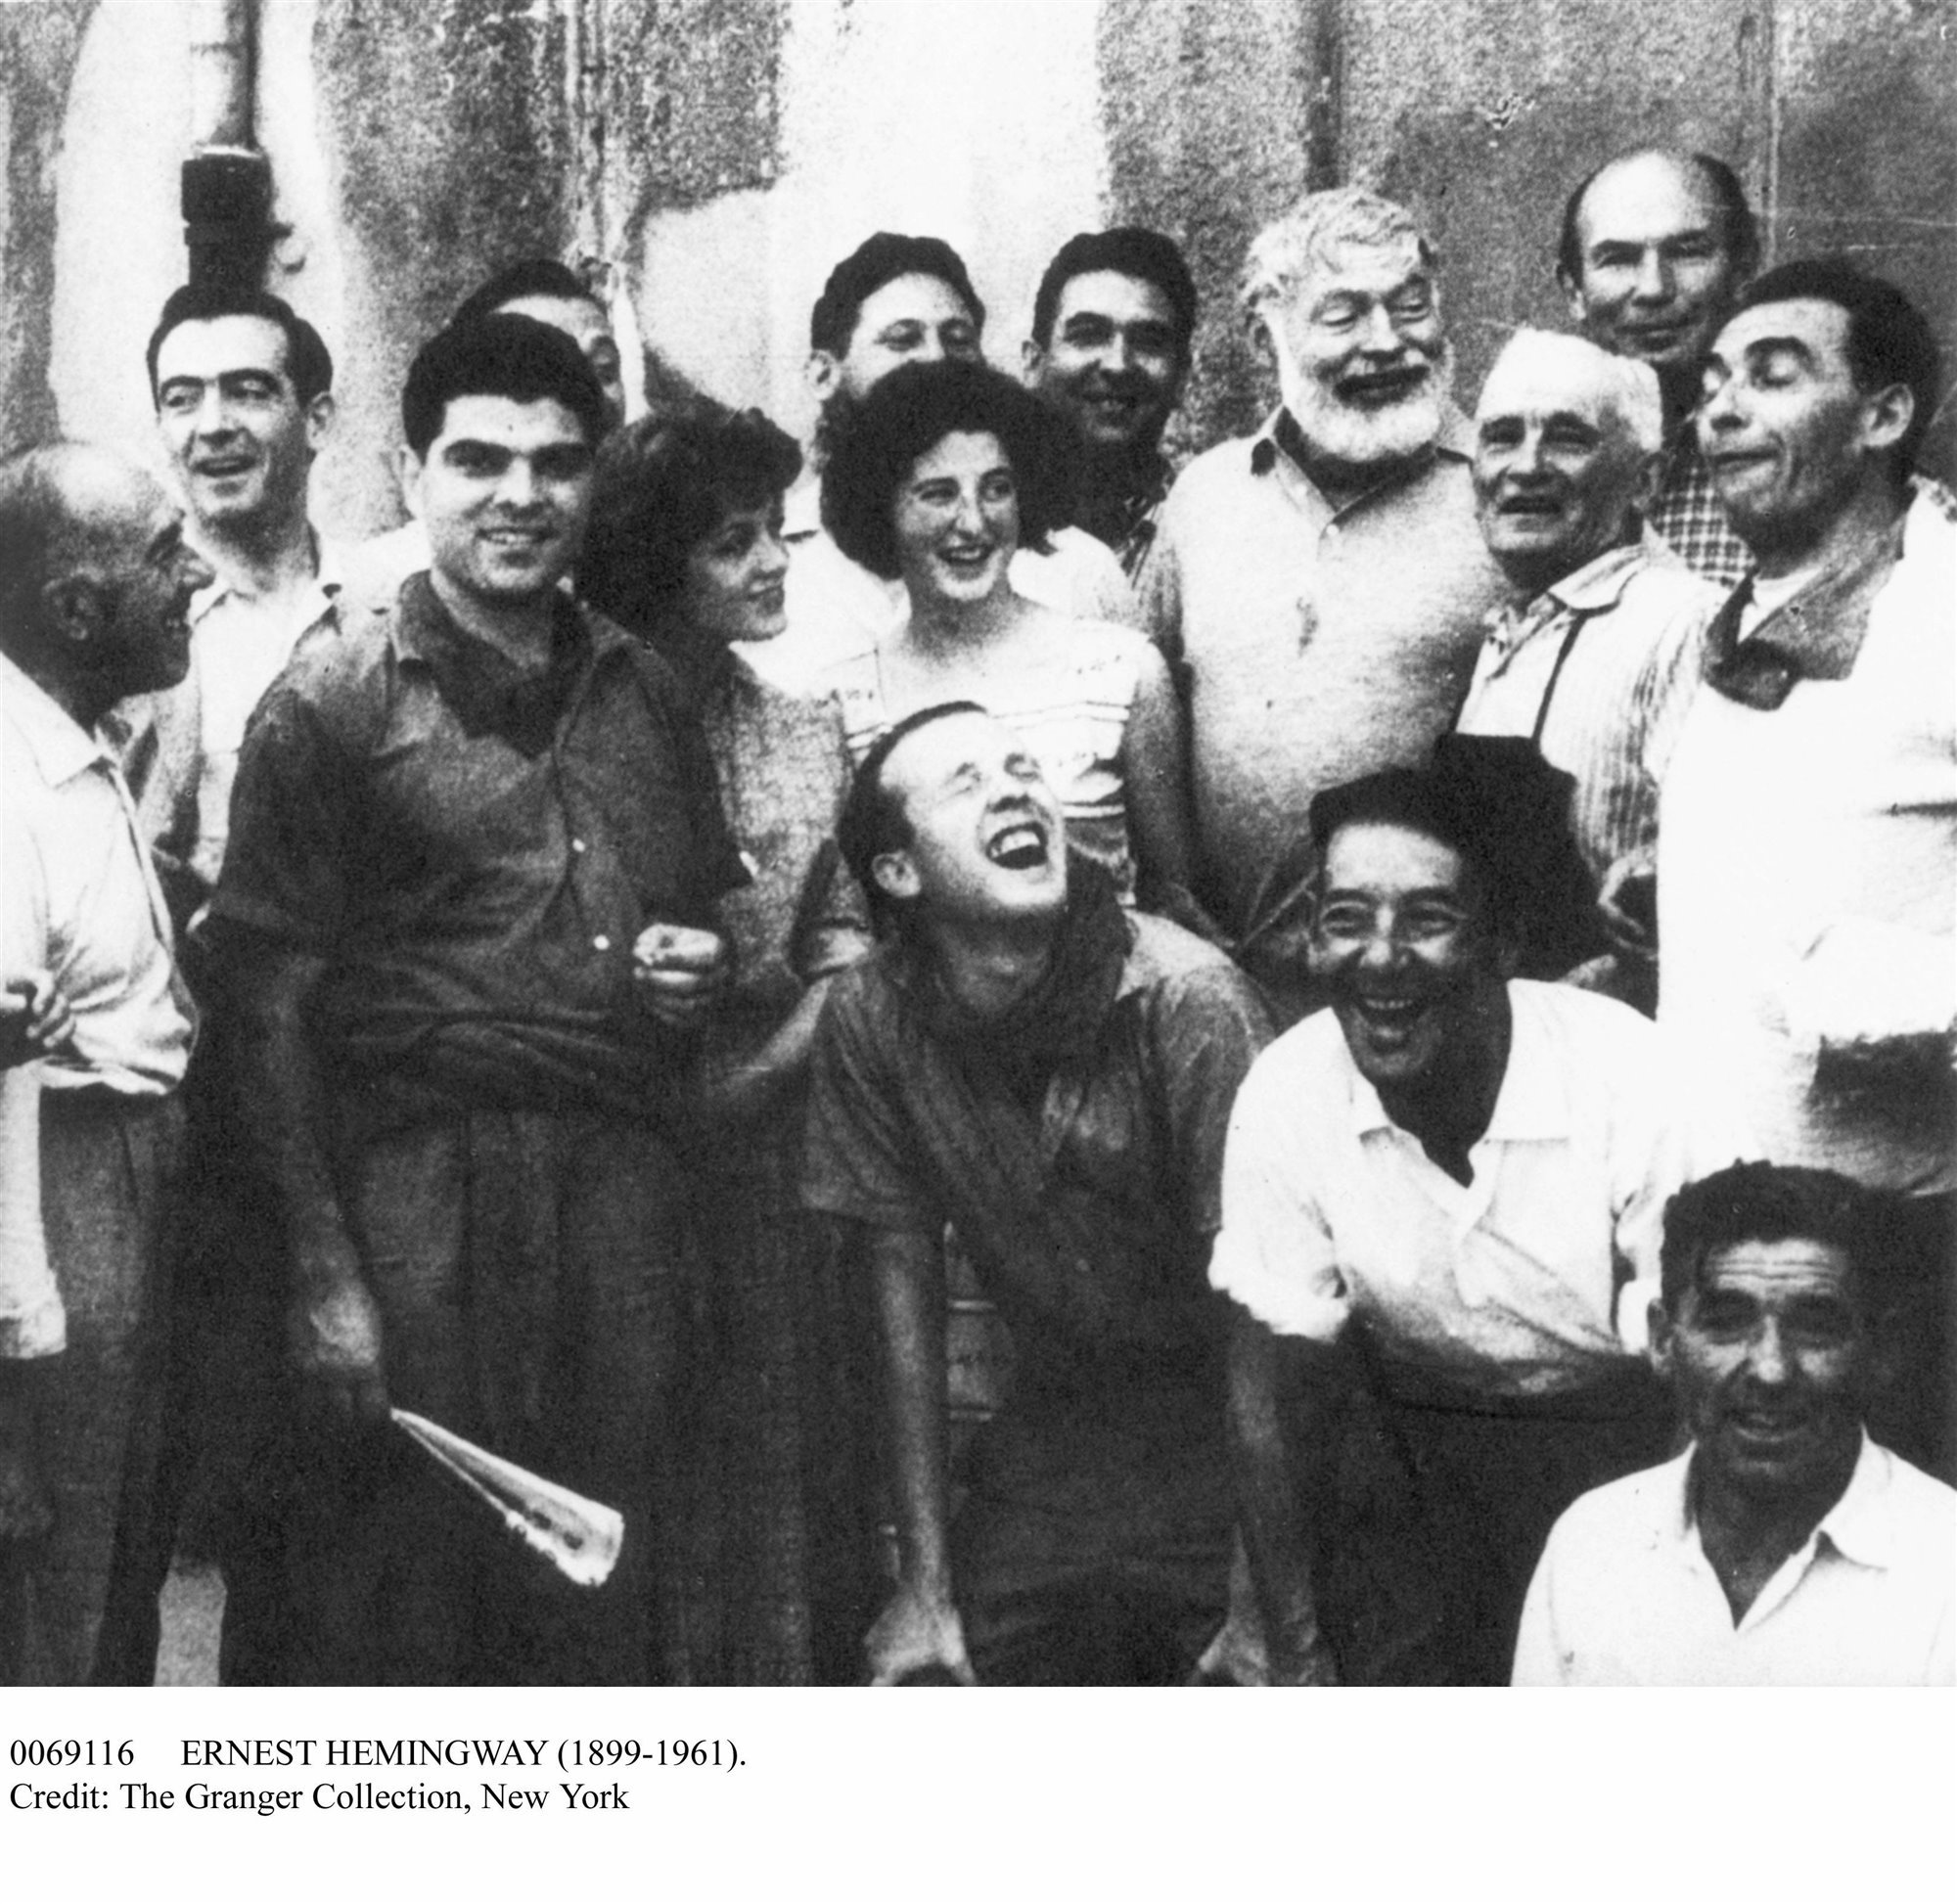 ERNEST HEMINGWAY (1899-1961). American writer, at right with beard, photographed in a crowd at Pamplona, Spain, July 1959.. El escritor americano Ernest Hemingway en Pamplona, España,  en julio de 1959.